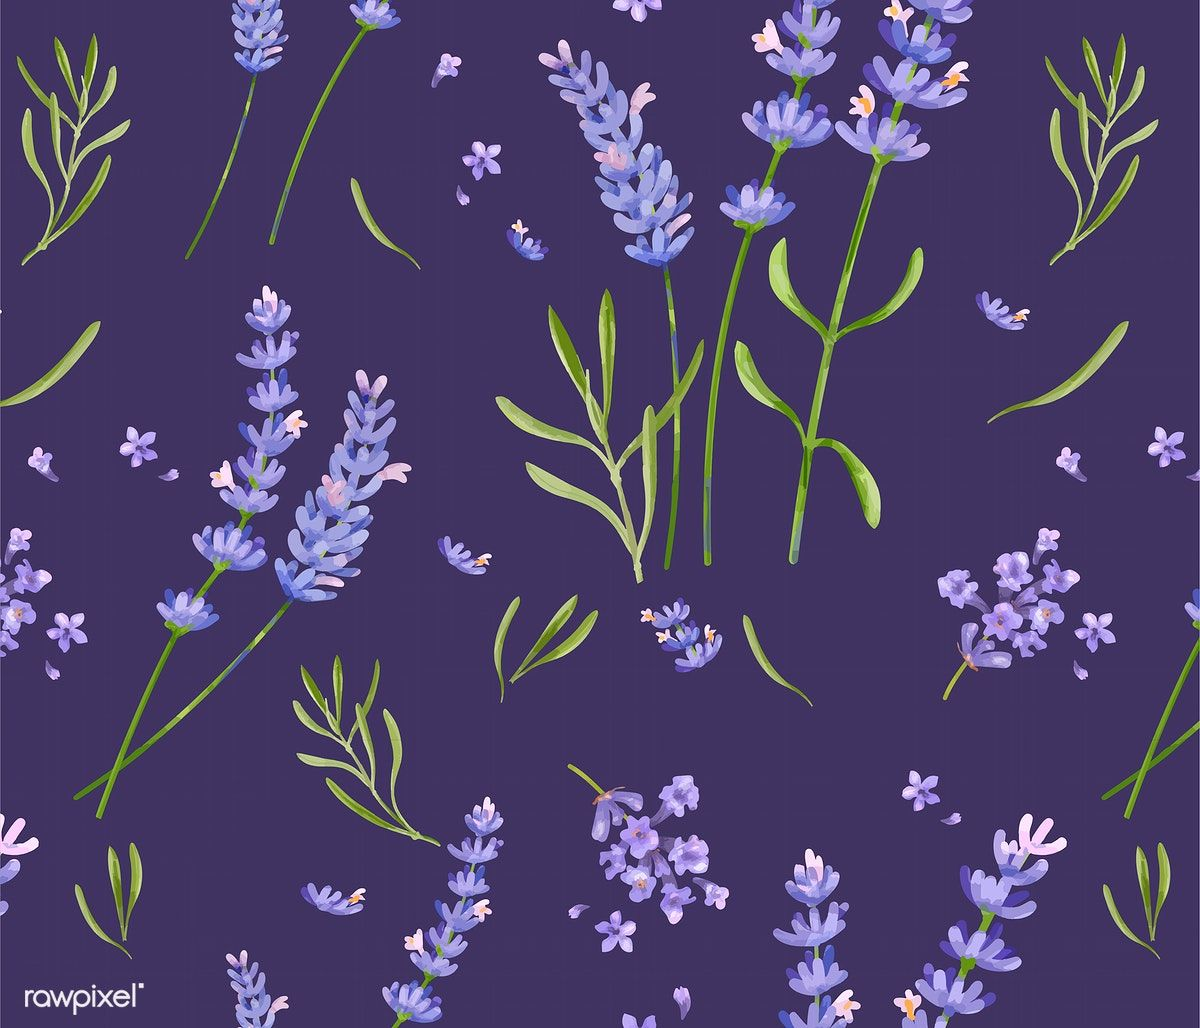 Download Premium Vector Of Hand Drawn Lavender Flower Pattern 421560 Flower Illustration Flower Drawing How To Draw Hands